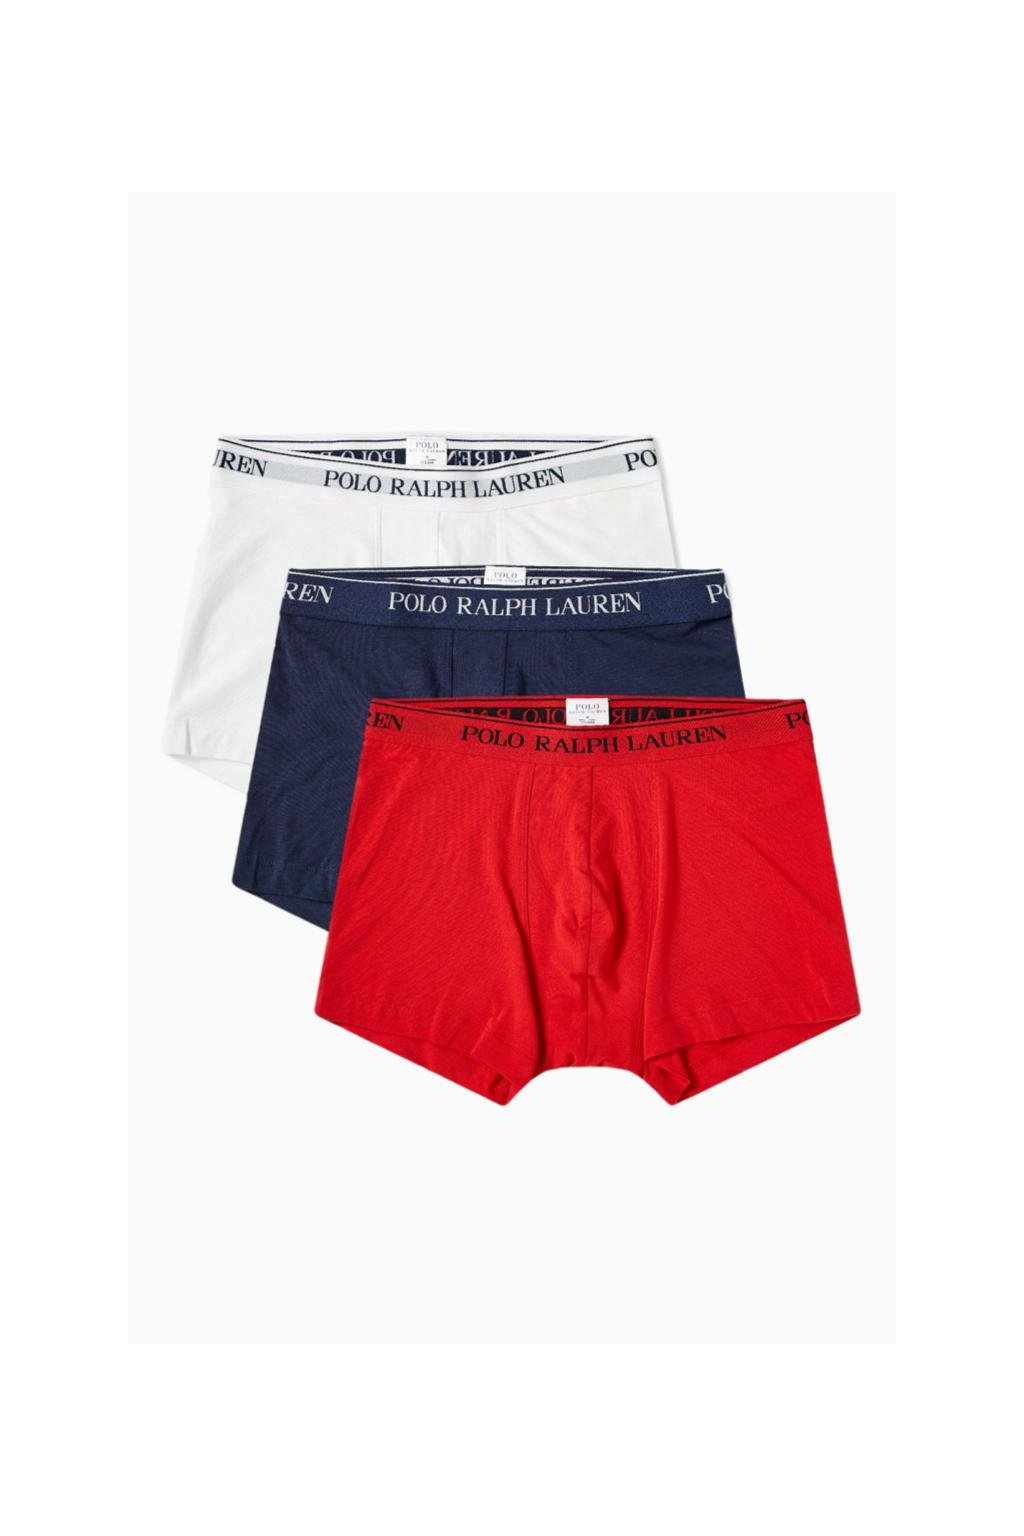 07 01 2019 poloralphlauren cottontrunk 3pack red white navy 714513424009 blr 1 clipped rev 1